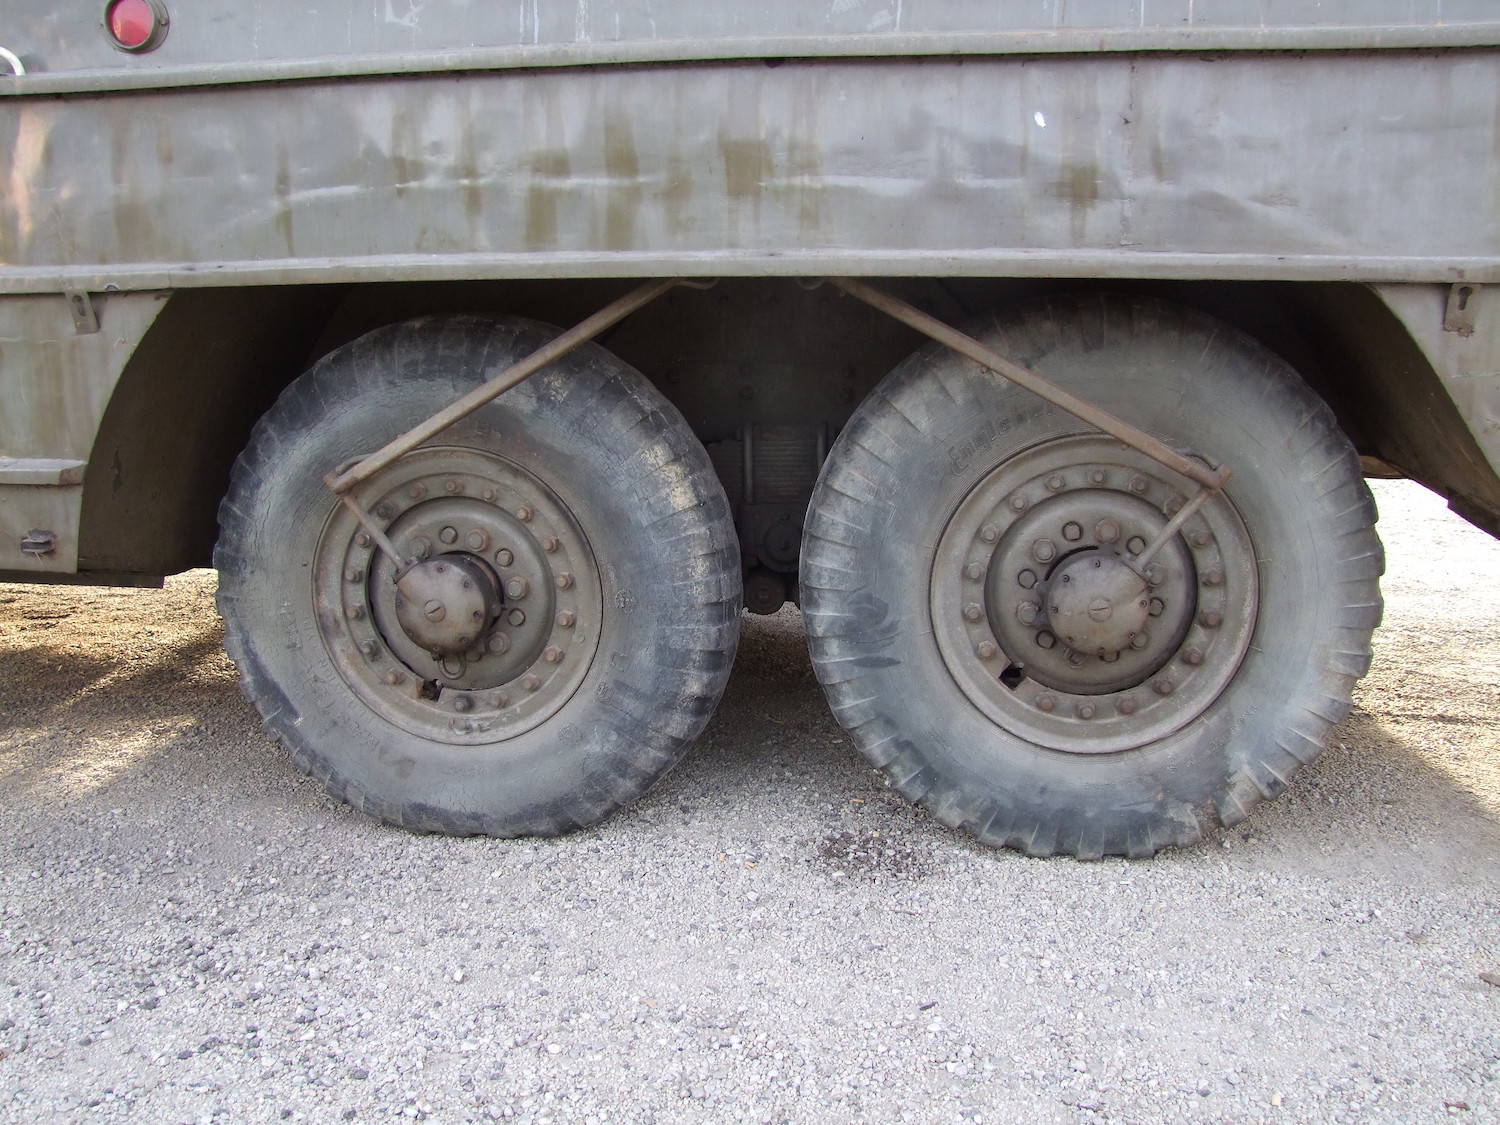 dukw wheels central tire inflation system closeup